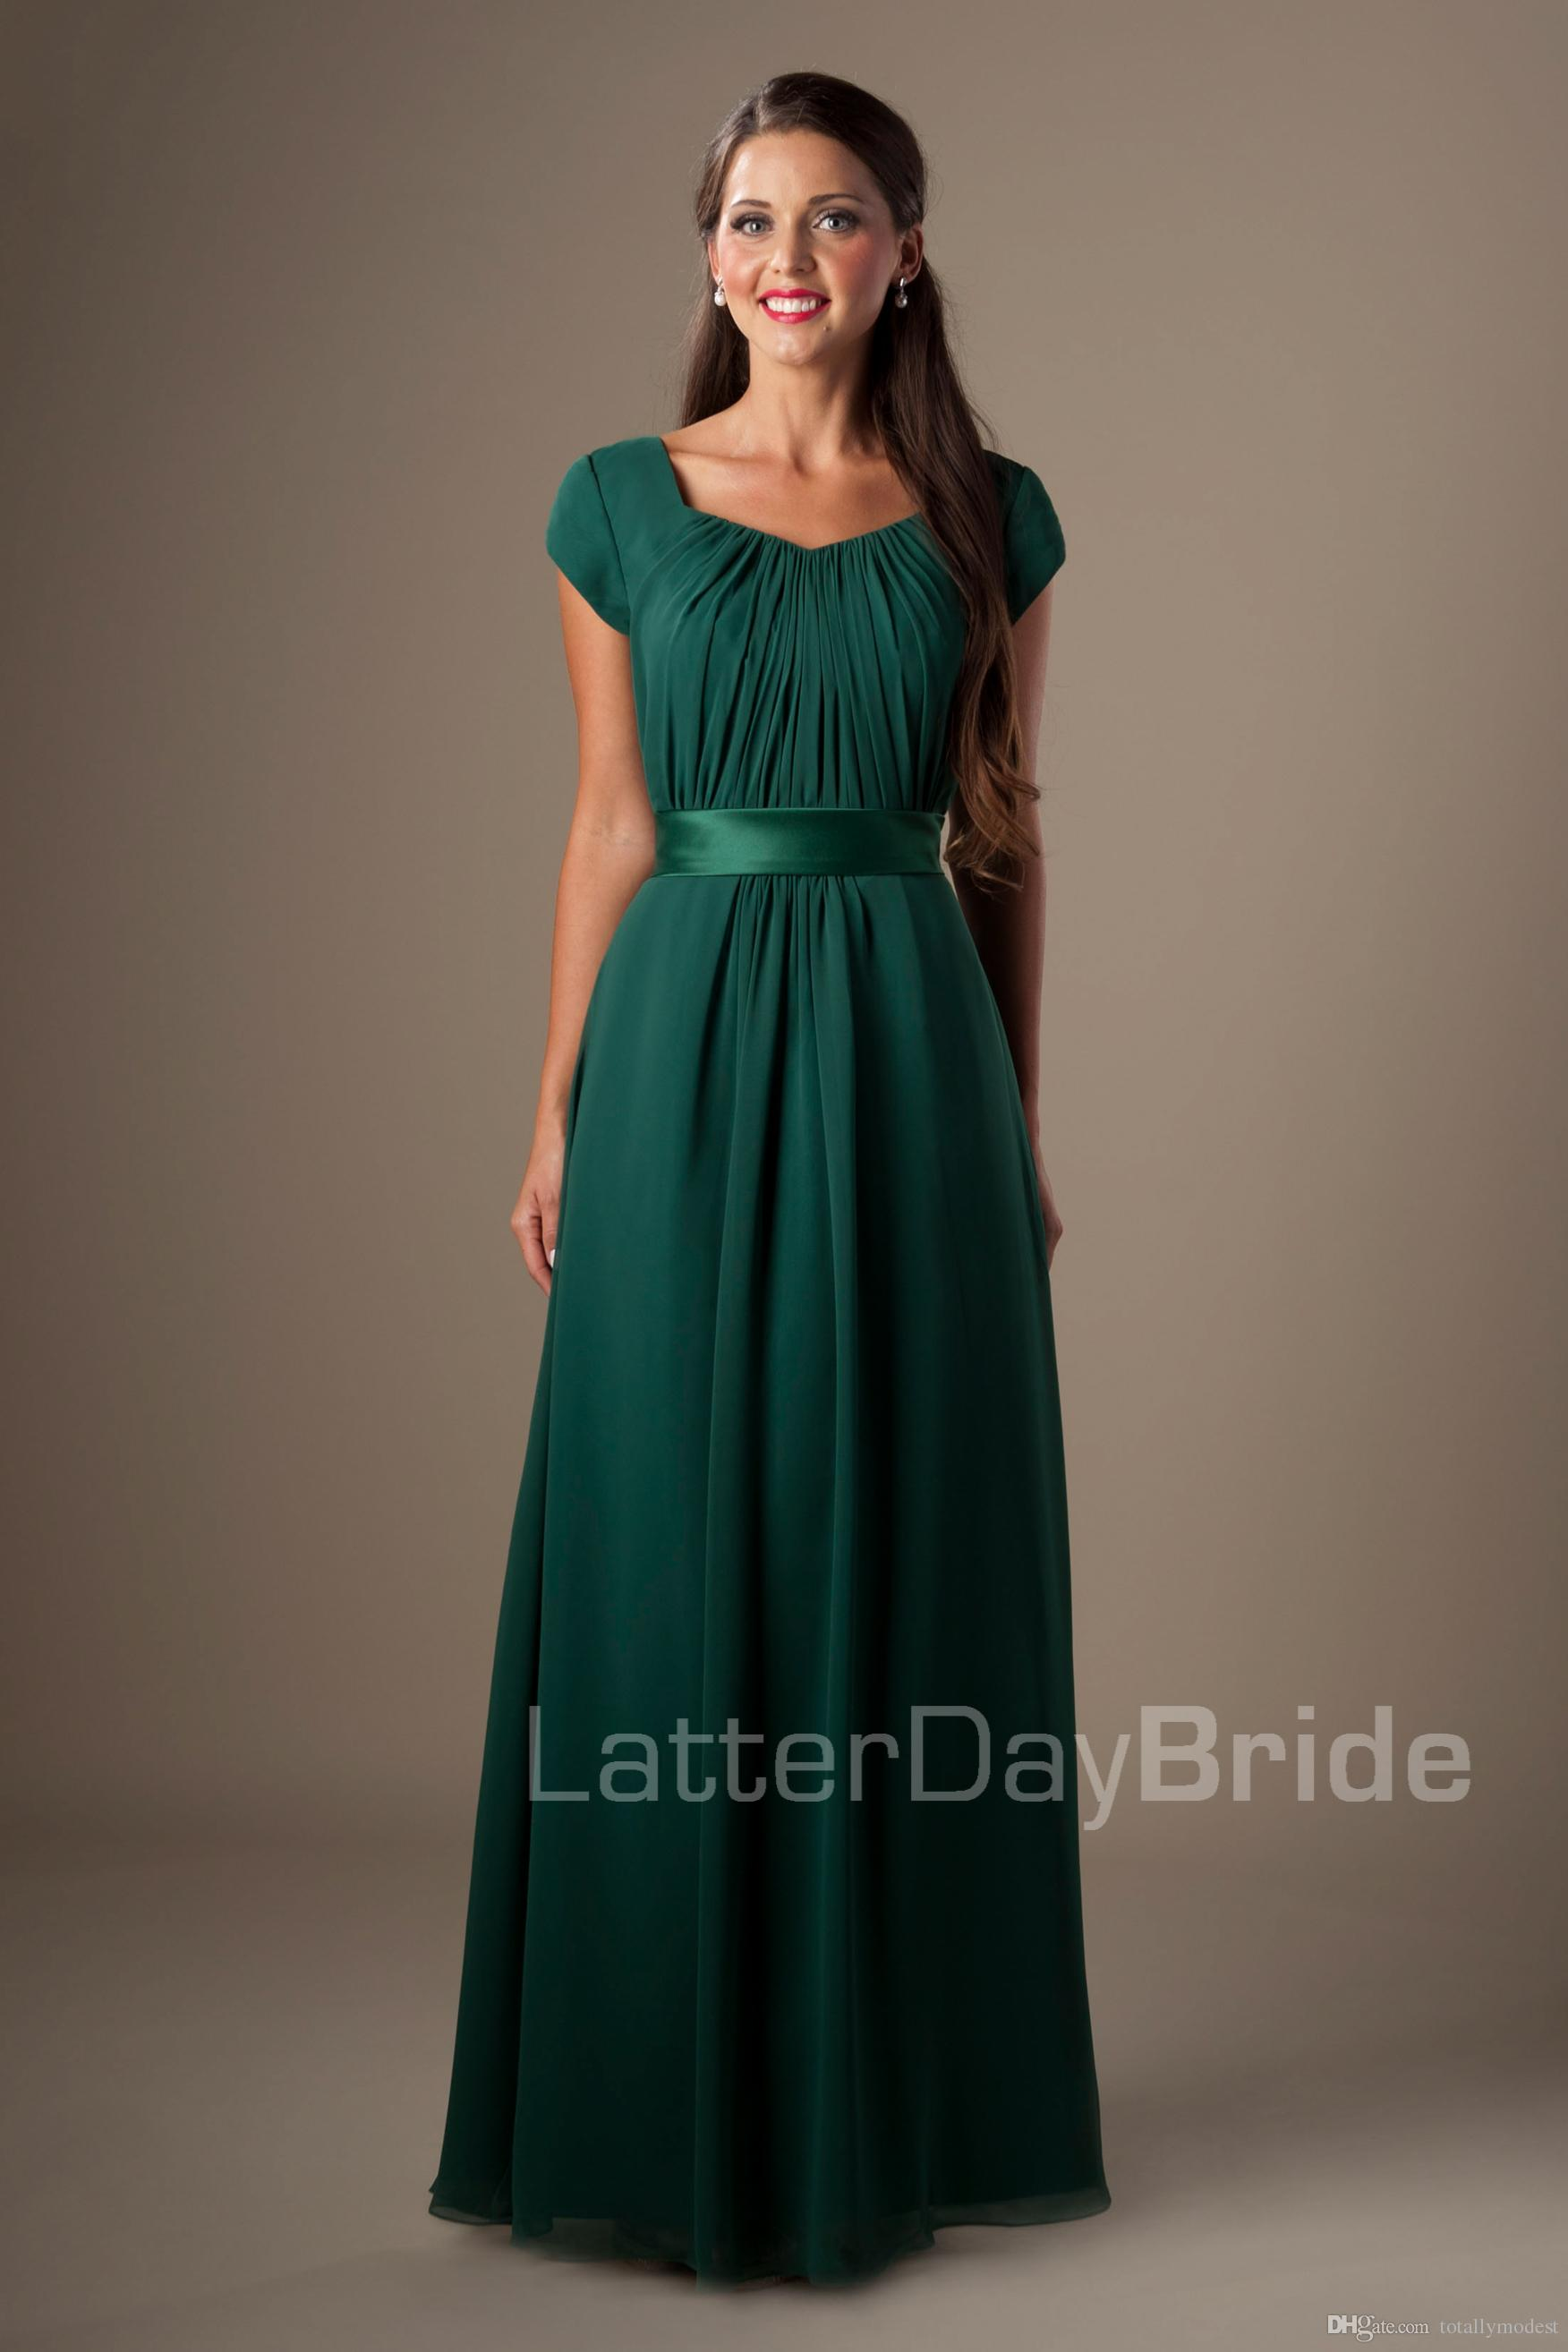 967c151dd579 Green Long Chiffon Modest Bridesmaid Dresses With Short Sleeves A Line  Temple Wedding Guests Dresses A Line Floor Maids Of Honor Dresses  Bridesmaid Dresses ...